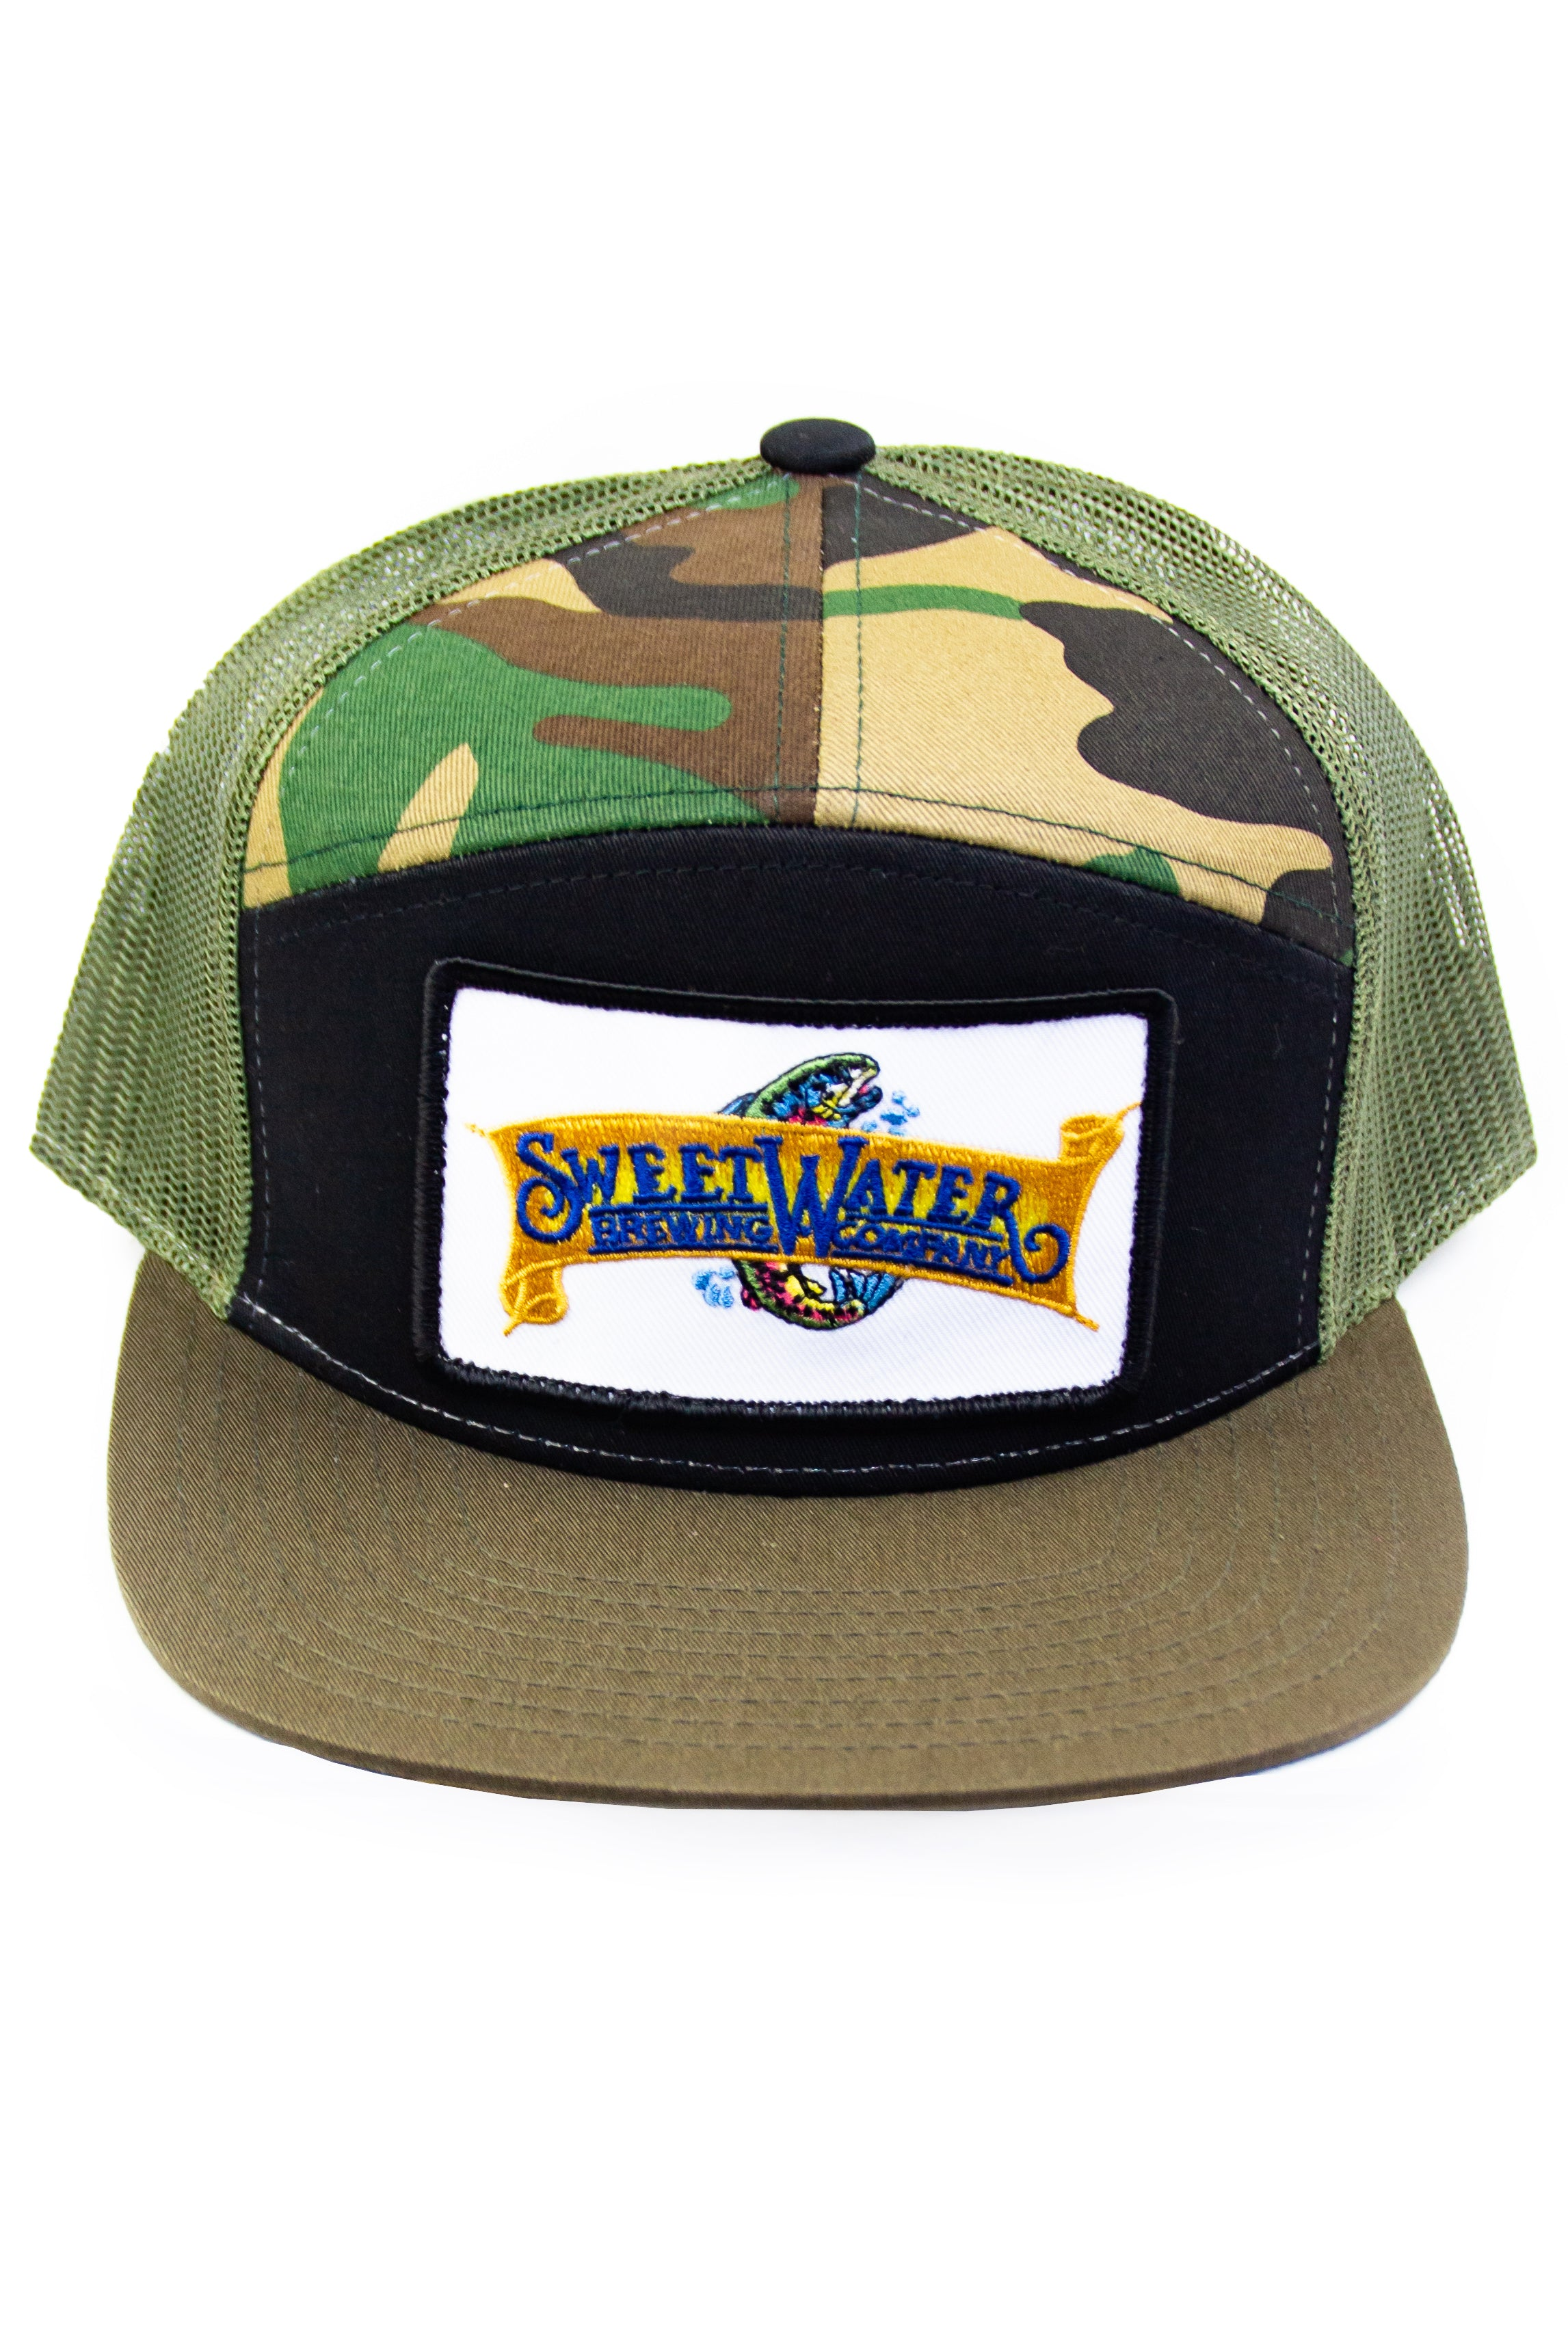 7-Panel Trucker Hat – SweetWater Brewery Outfitters ee613a23c04